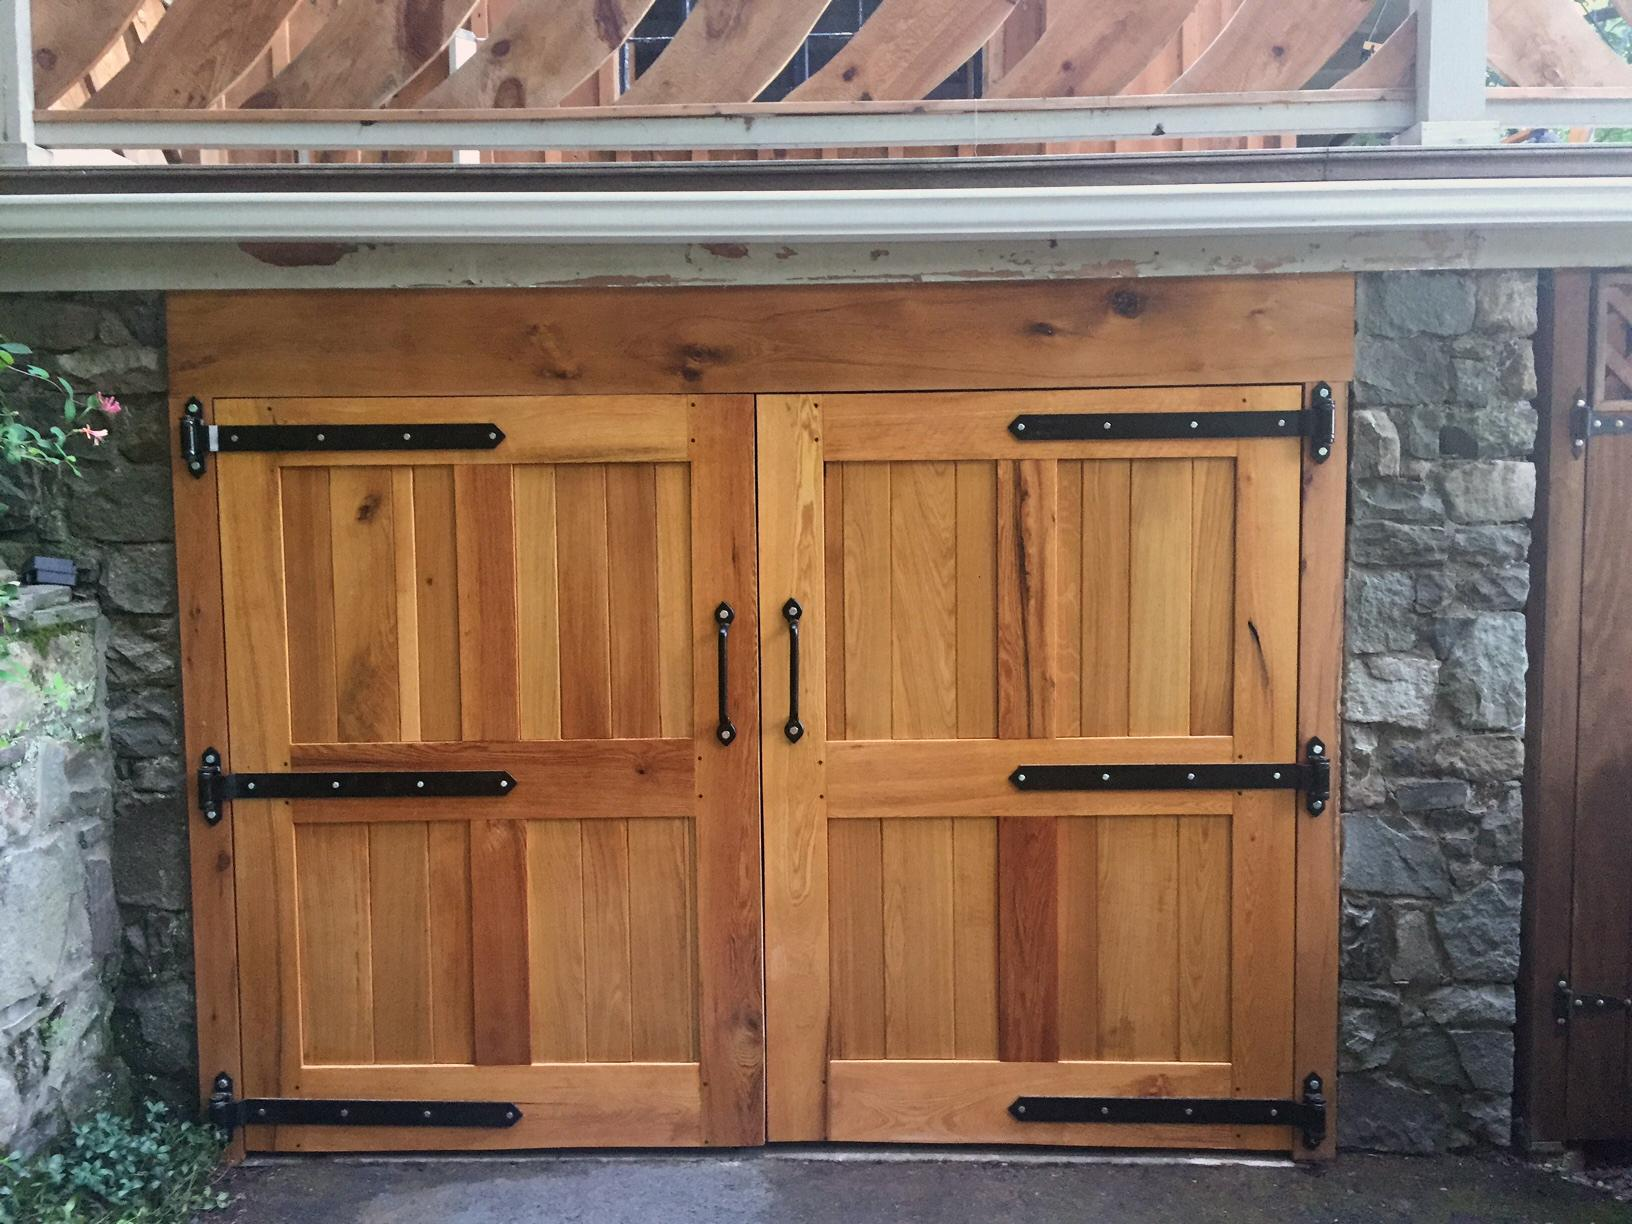 Rustic Double Doors with Black Hinges and Handles